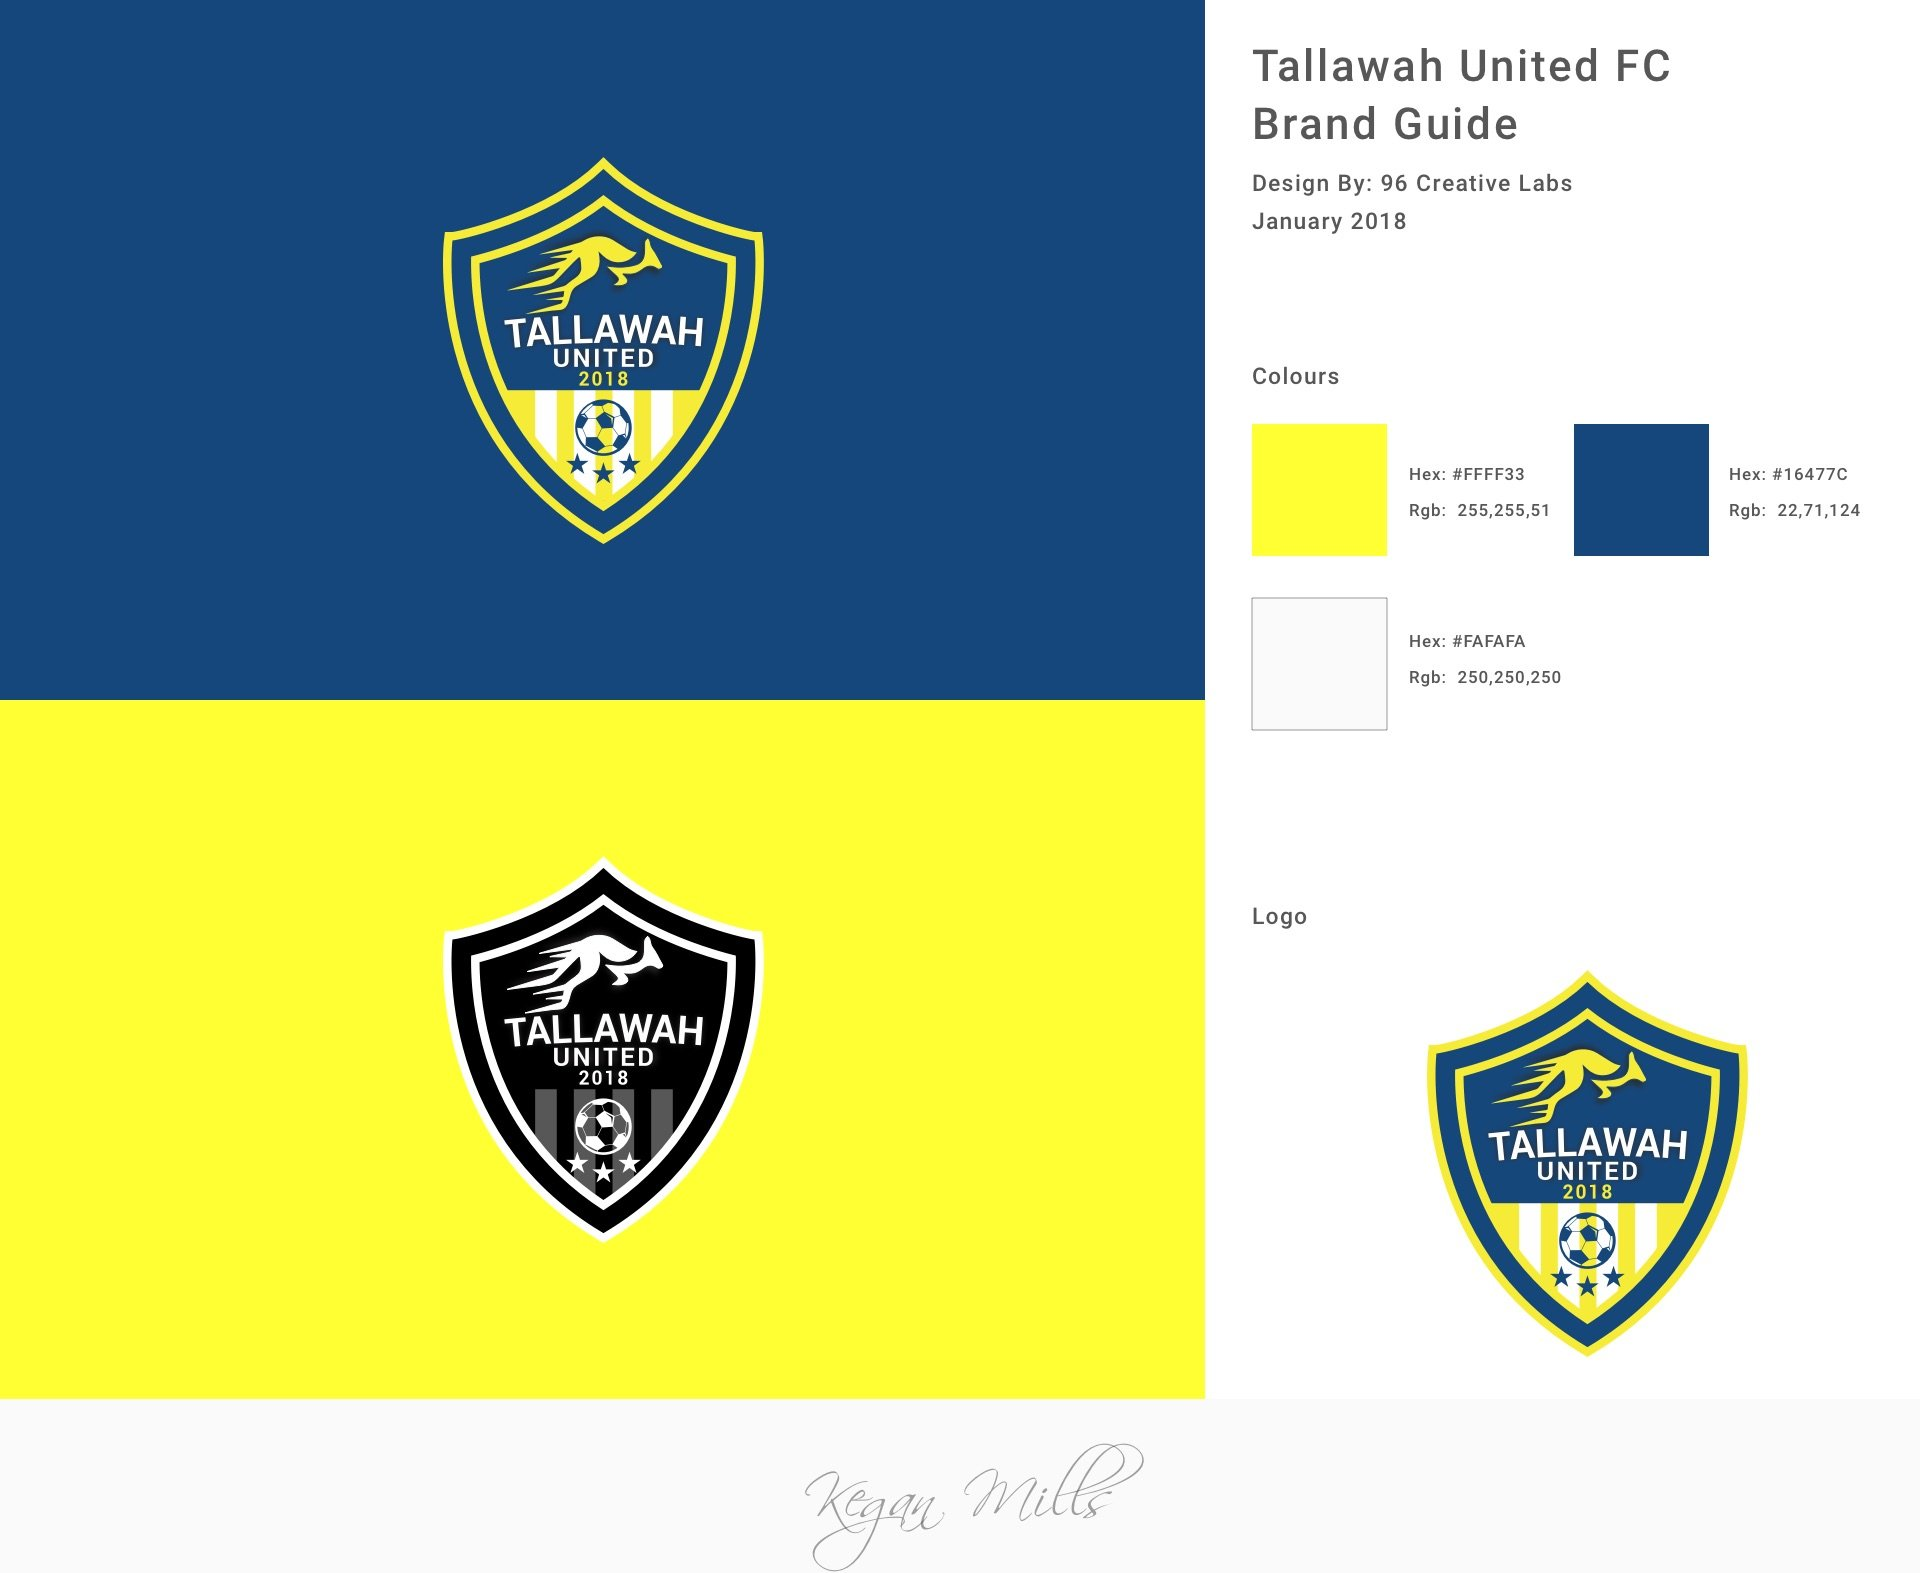 Tallawah_United_FC_Brand_Guide-96